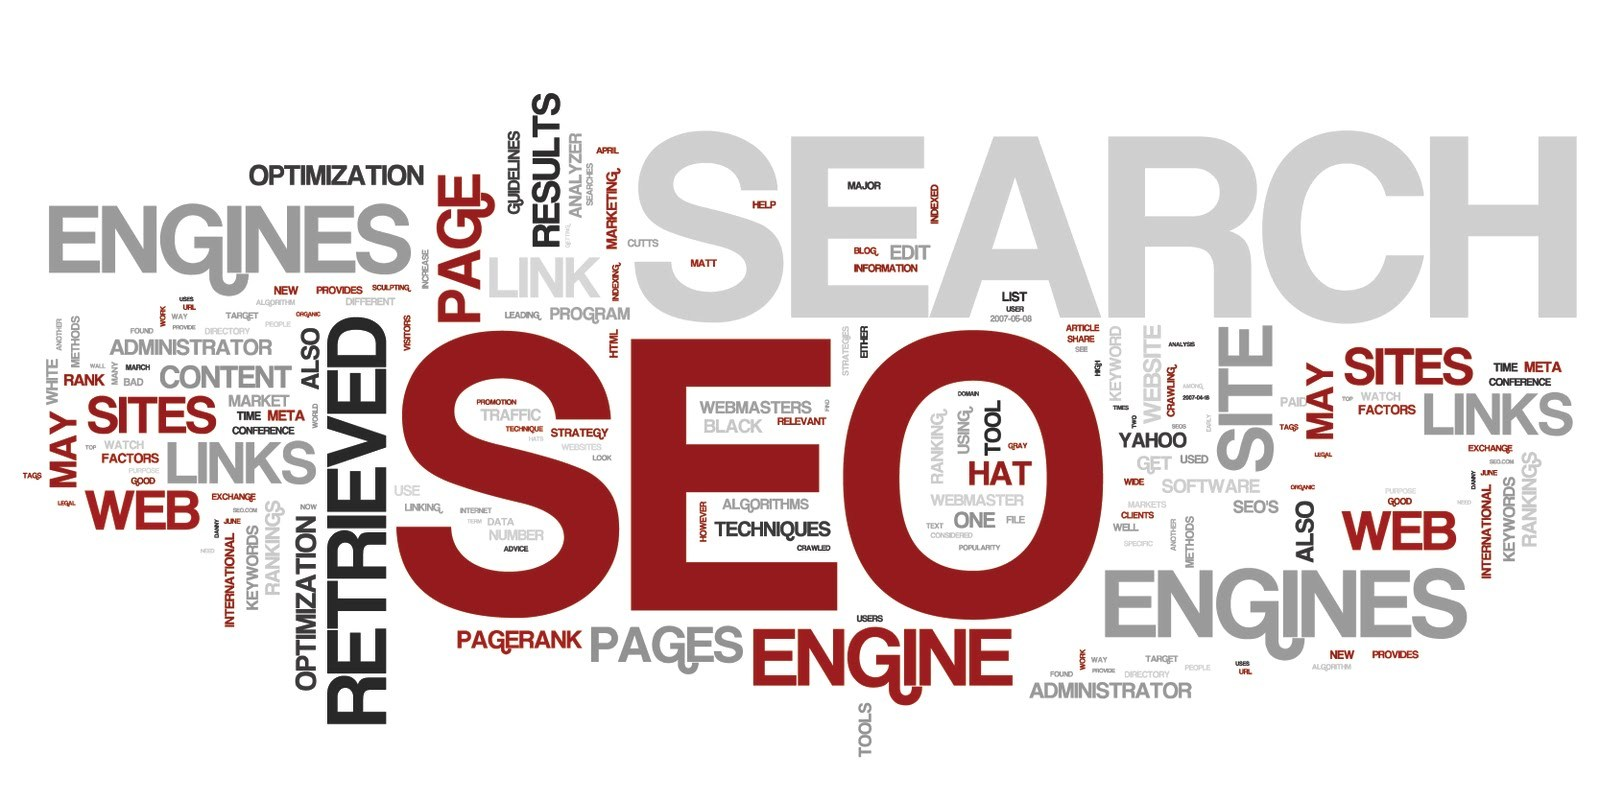 Thinking Ahead to 2014 - Preparing Your SEO Tactics and Strategizing for the Coming Year